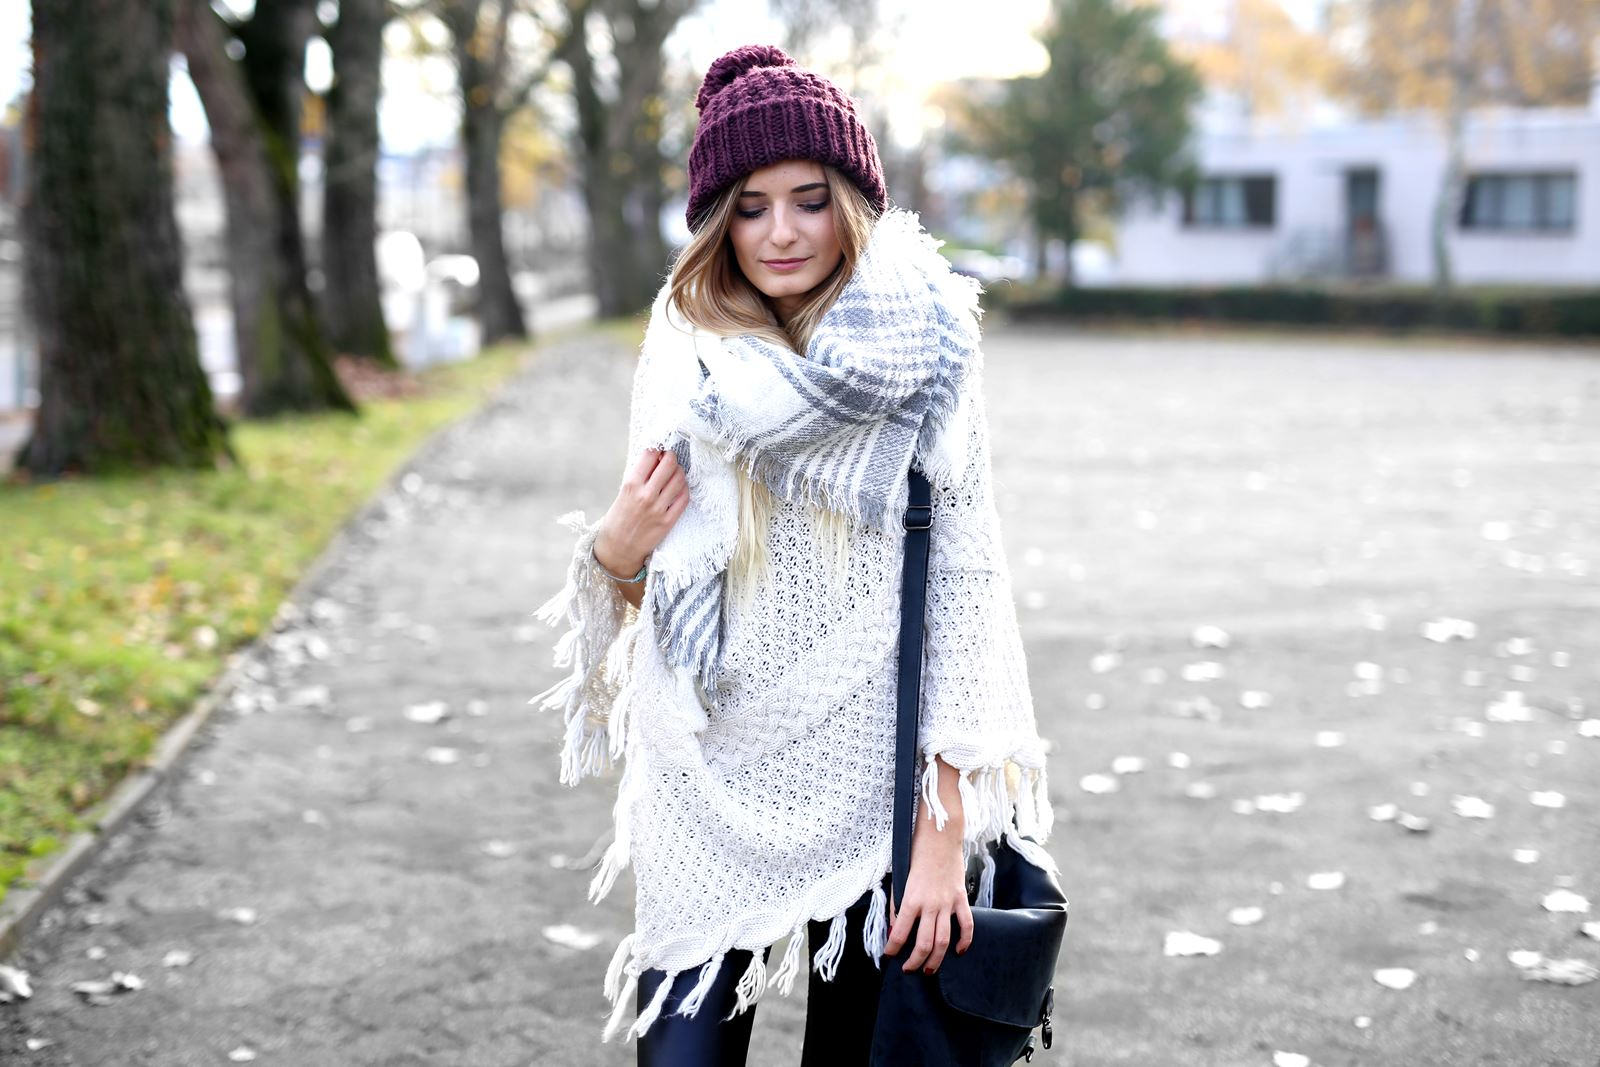 modeblog-german-fashion-blog-herbst-outfit-poncho-xxl-schal-4